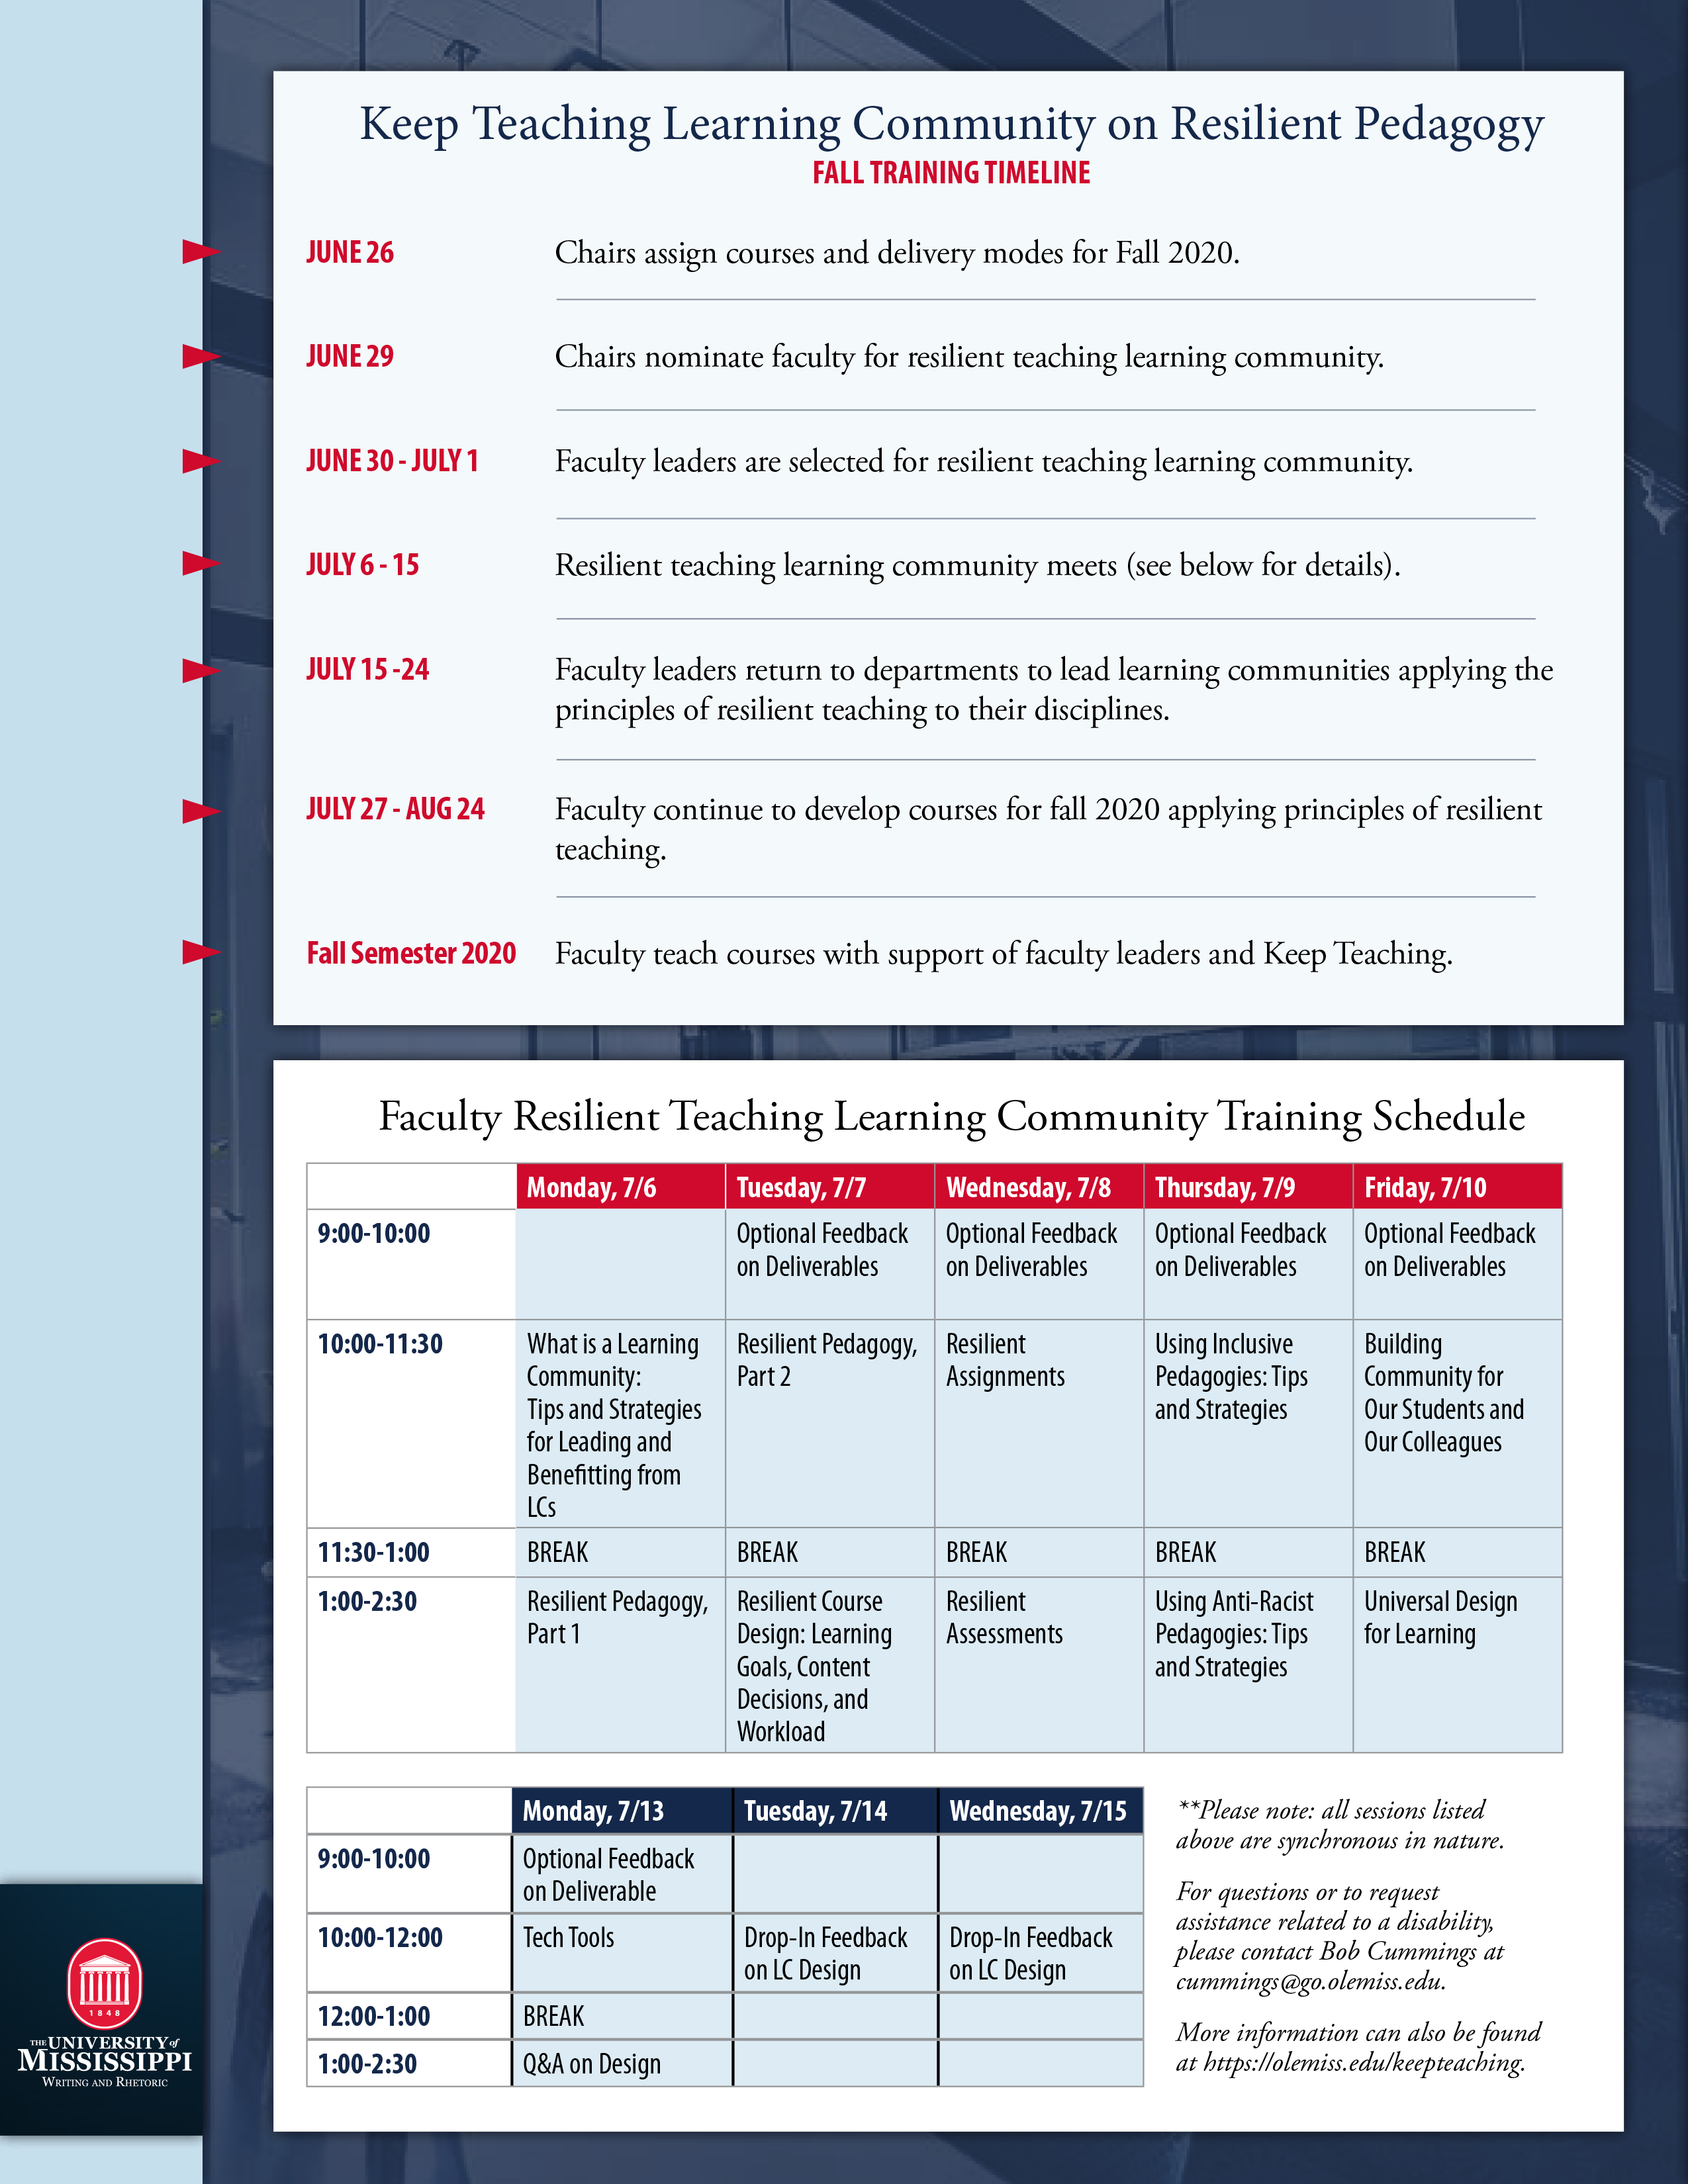 Keep Teaching Learning Community Training Schedule